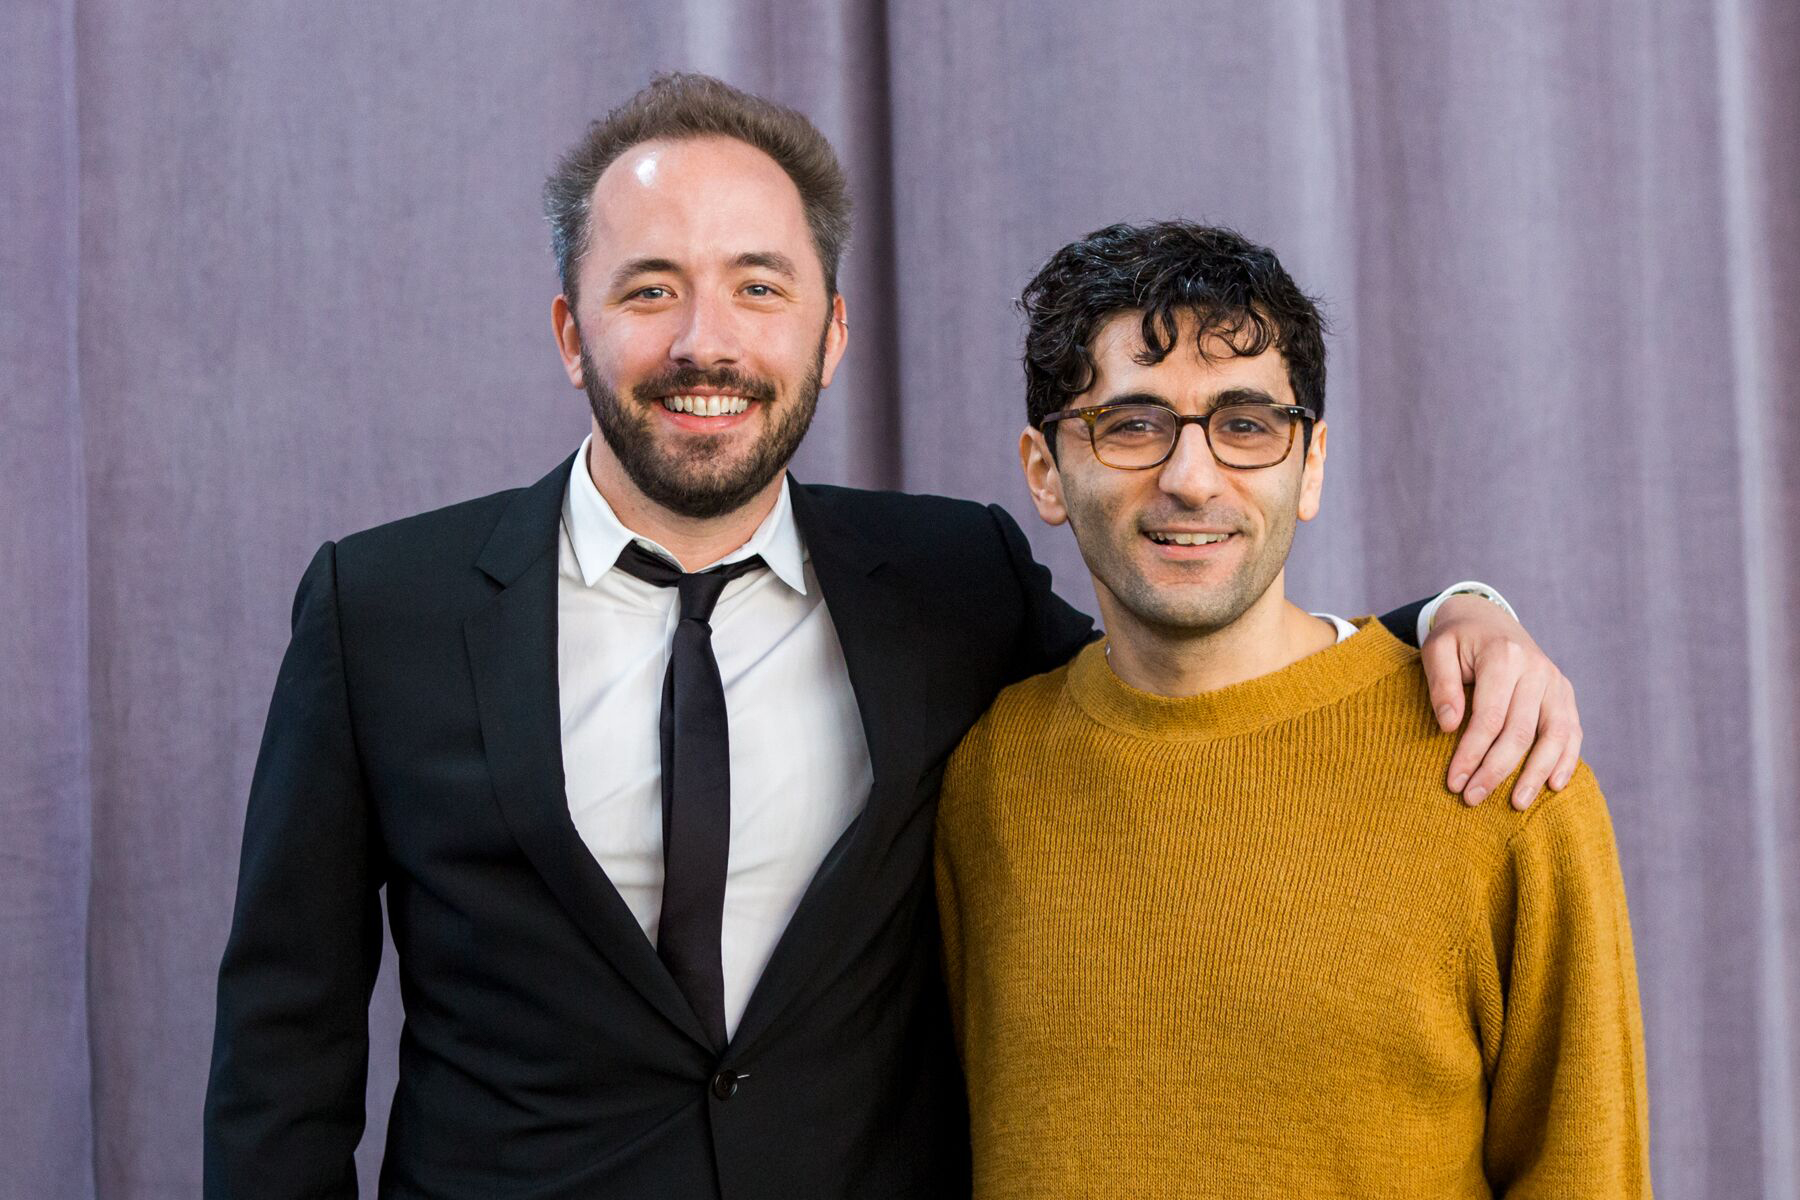 Drew Houston and Arash Ferdowsi in 2017